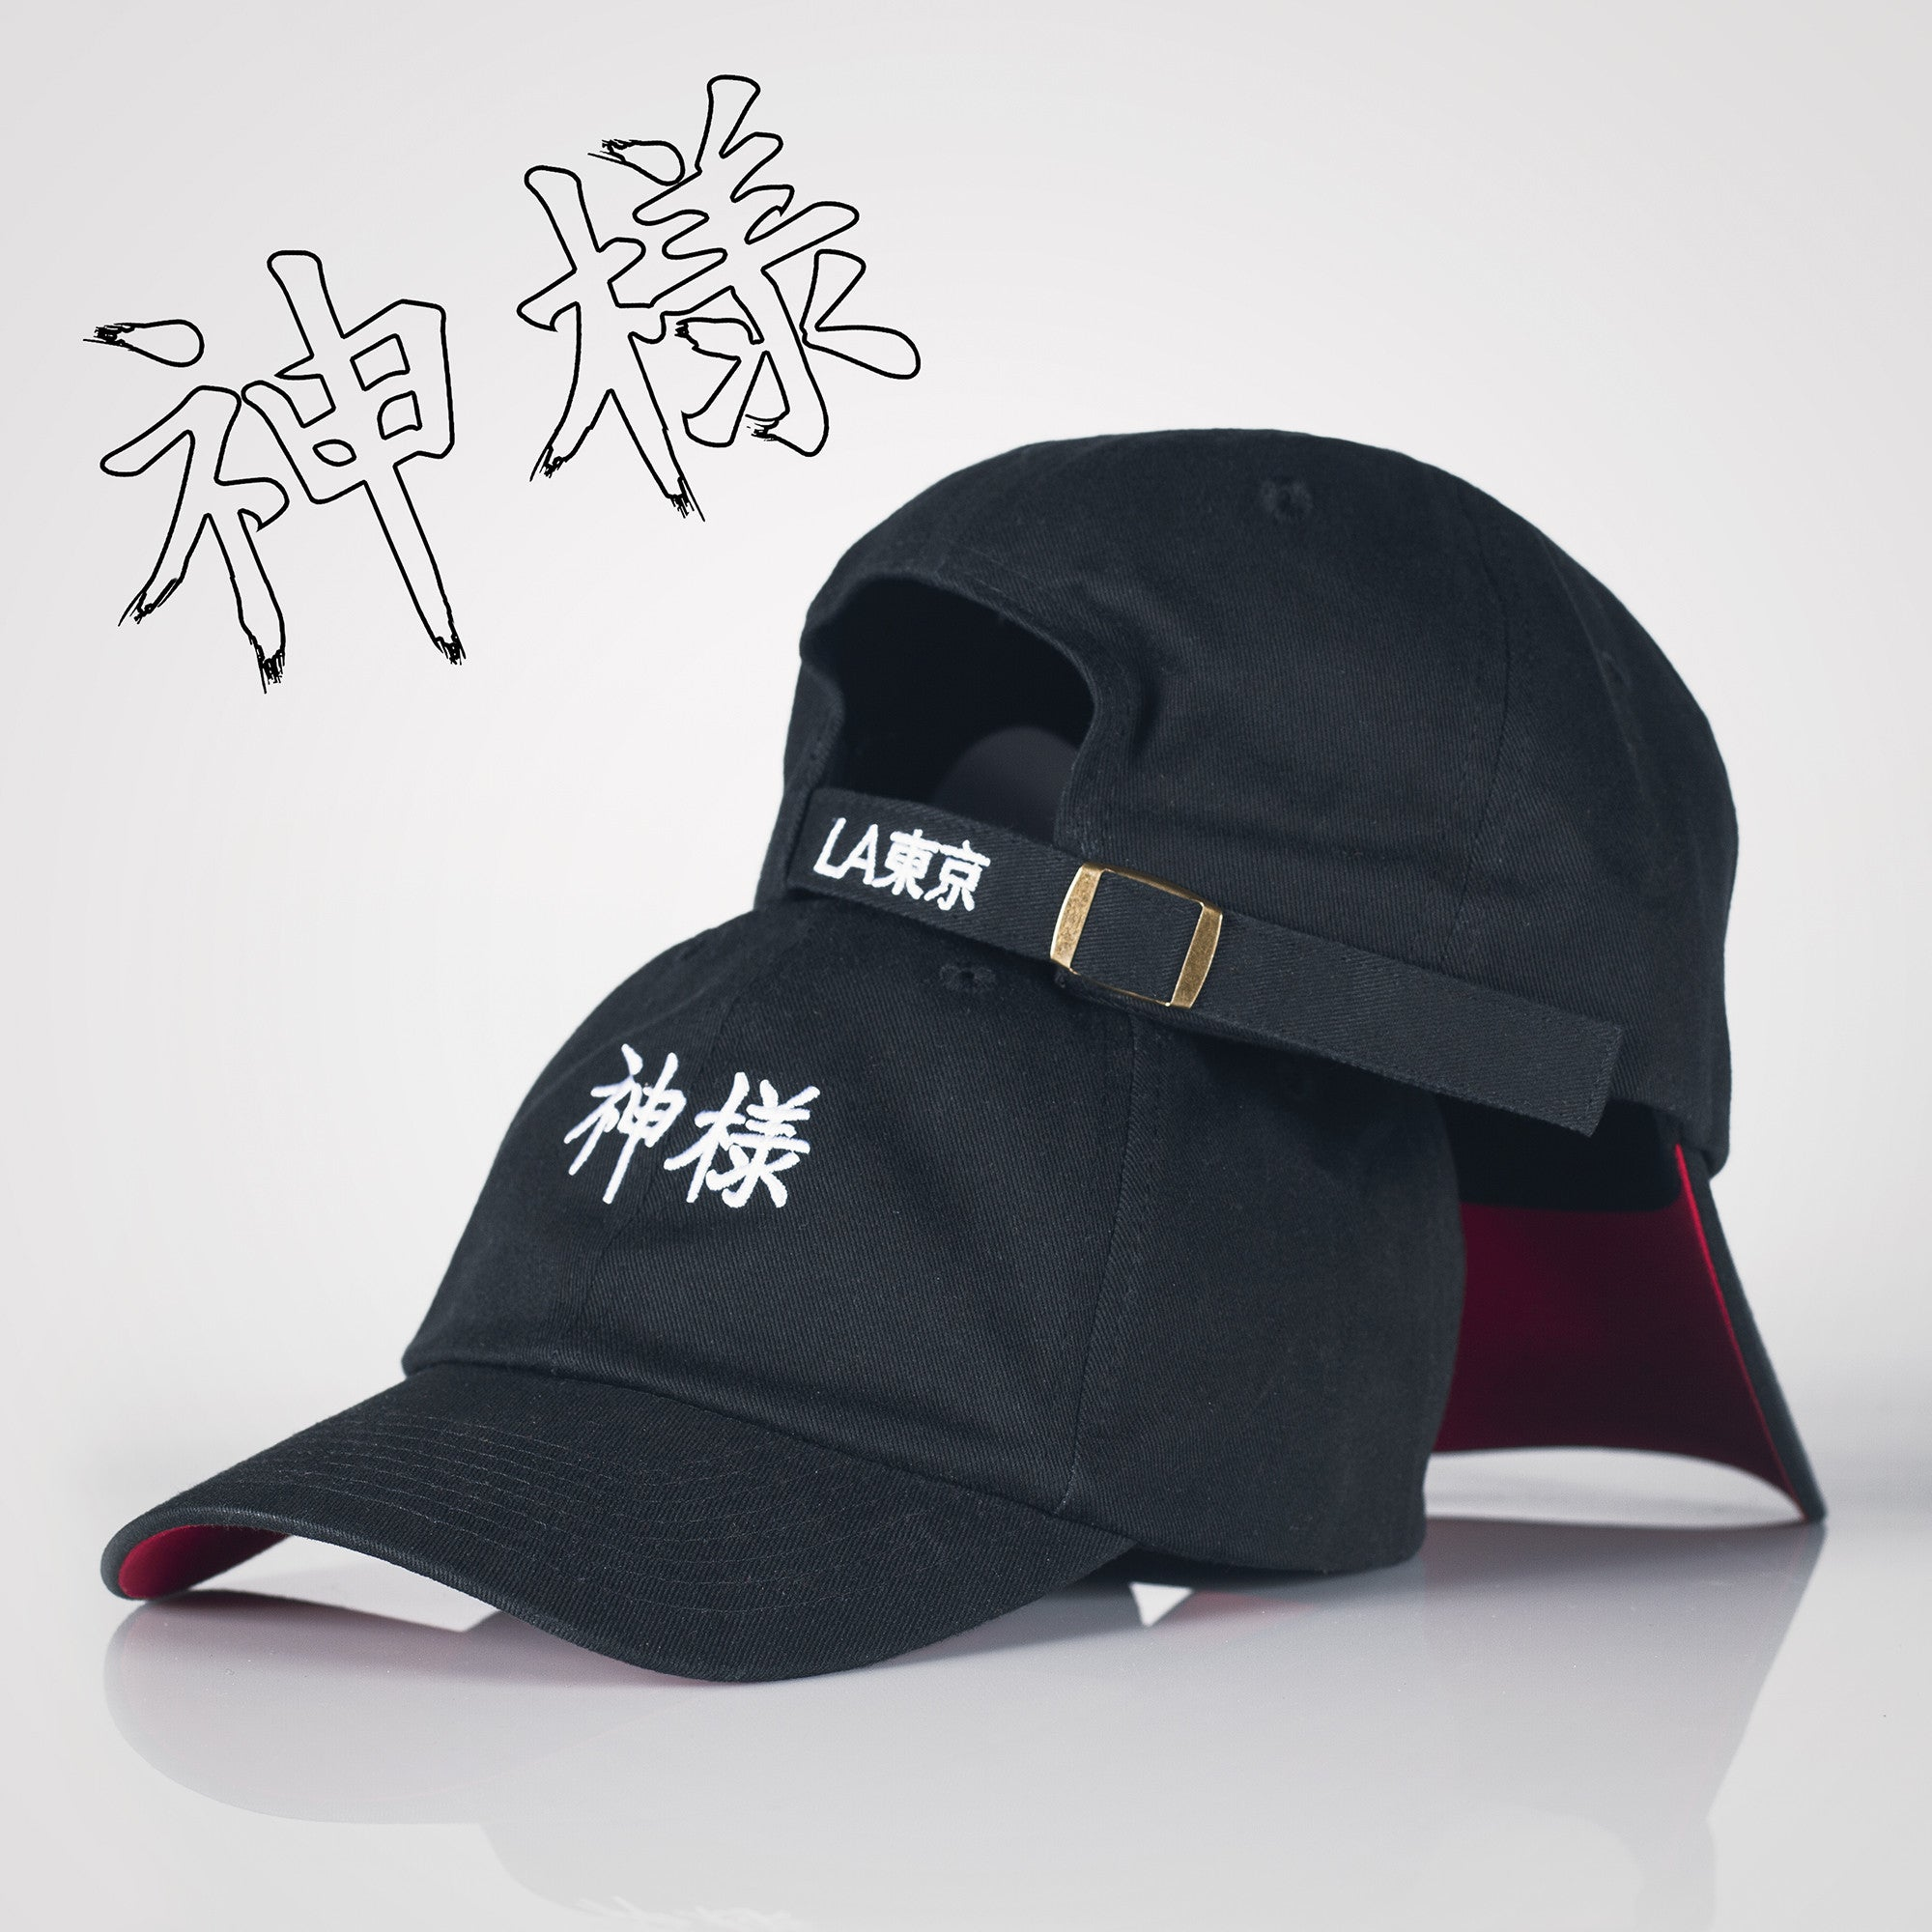 Kamisama (God) Cap in black